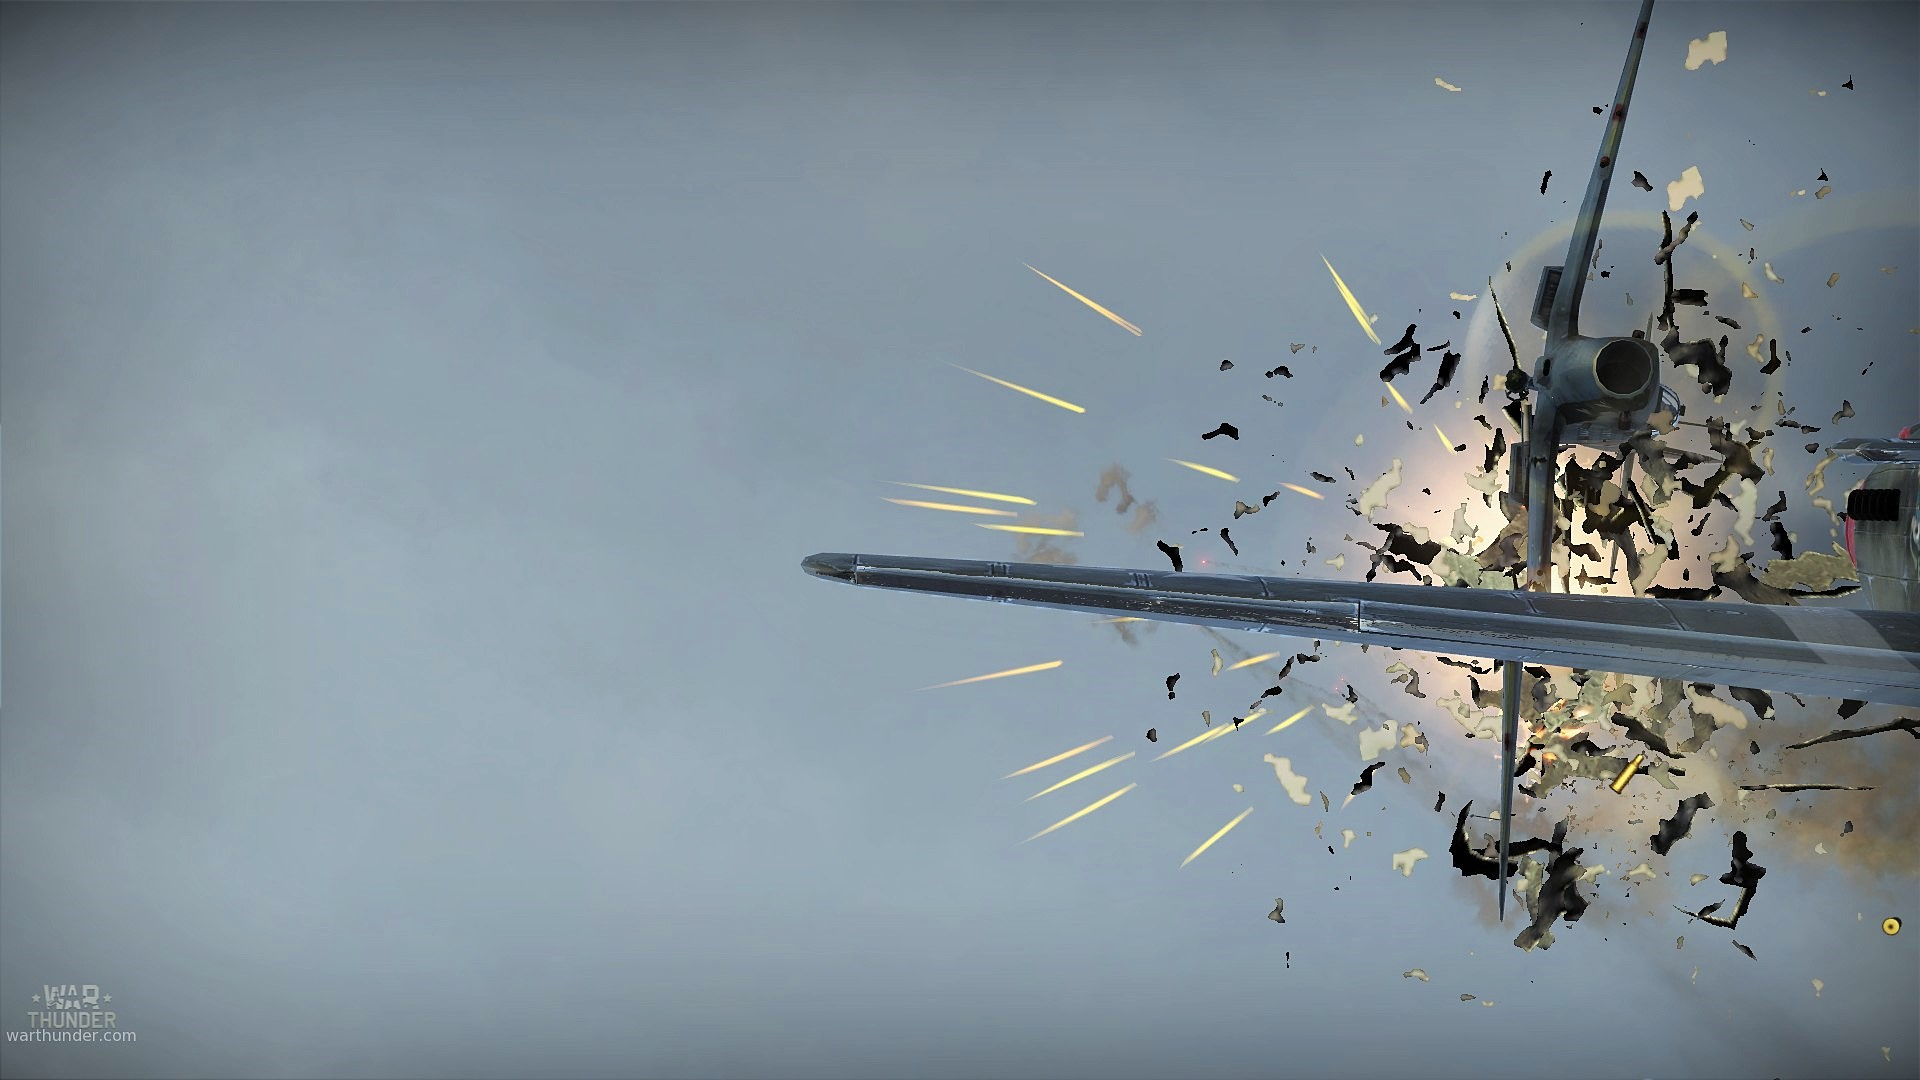 War thunder close call (7)